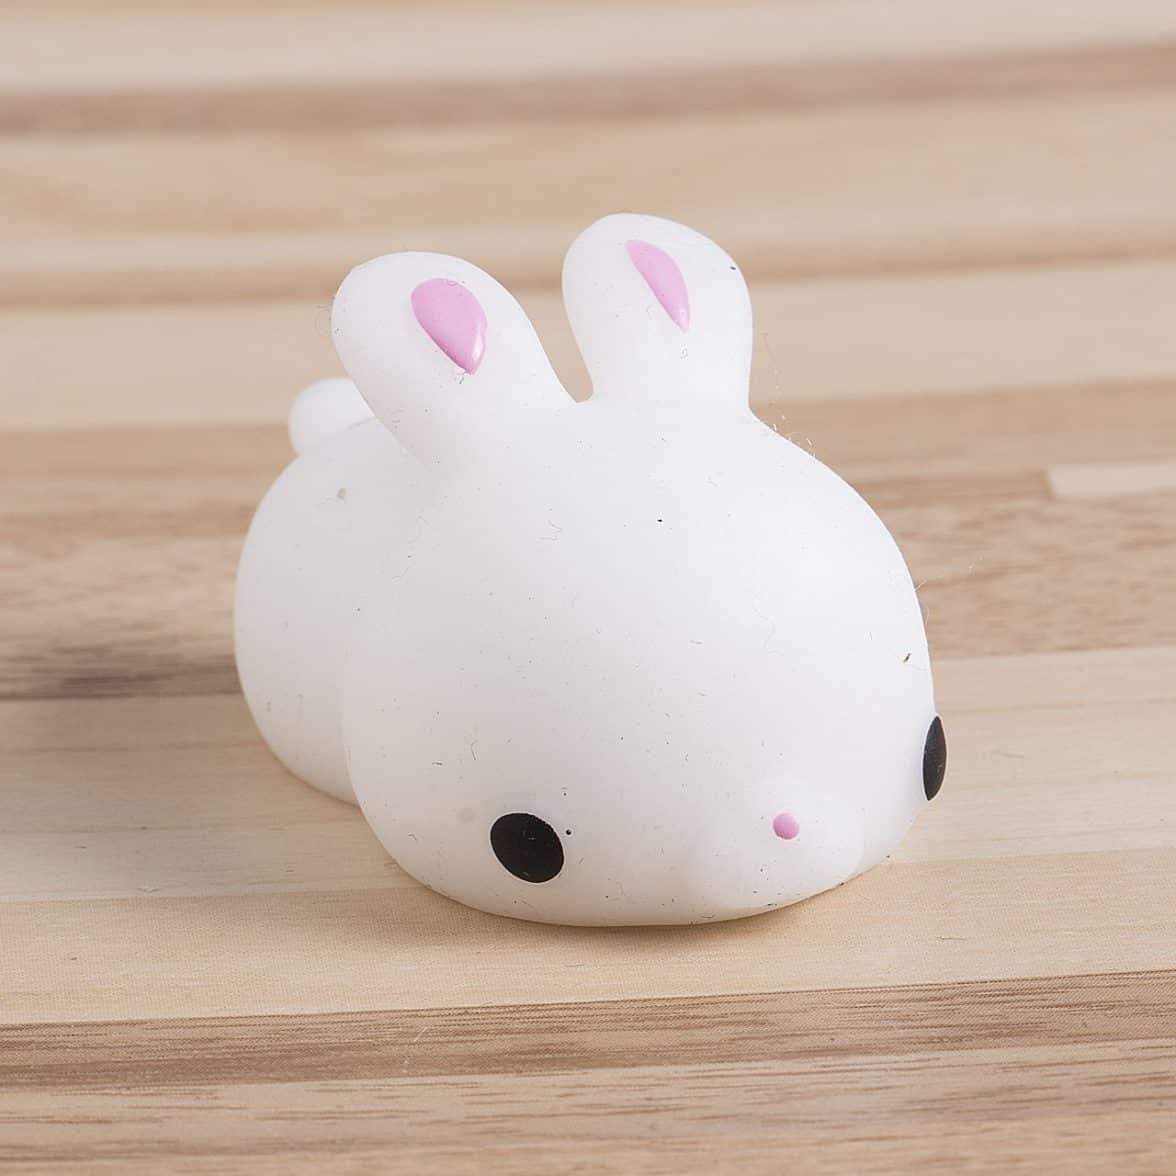 Cute Mini Animal Seals Healing Toys Slow Rising Squishy Stress Relief Toy for Kids Adults (Rabbit)